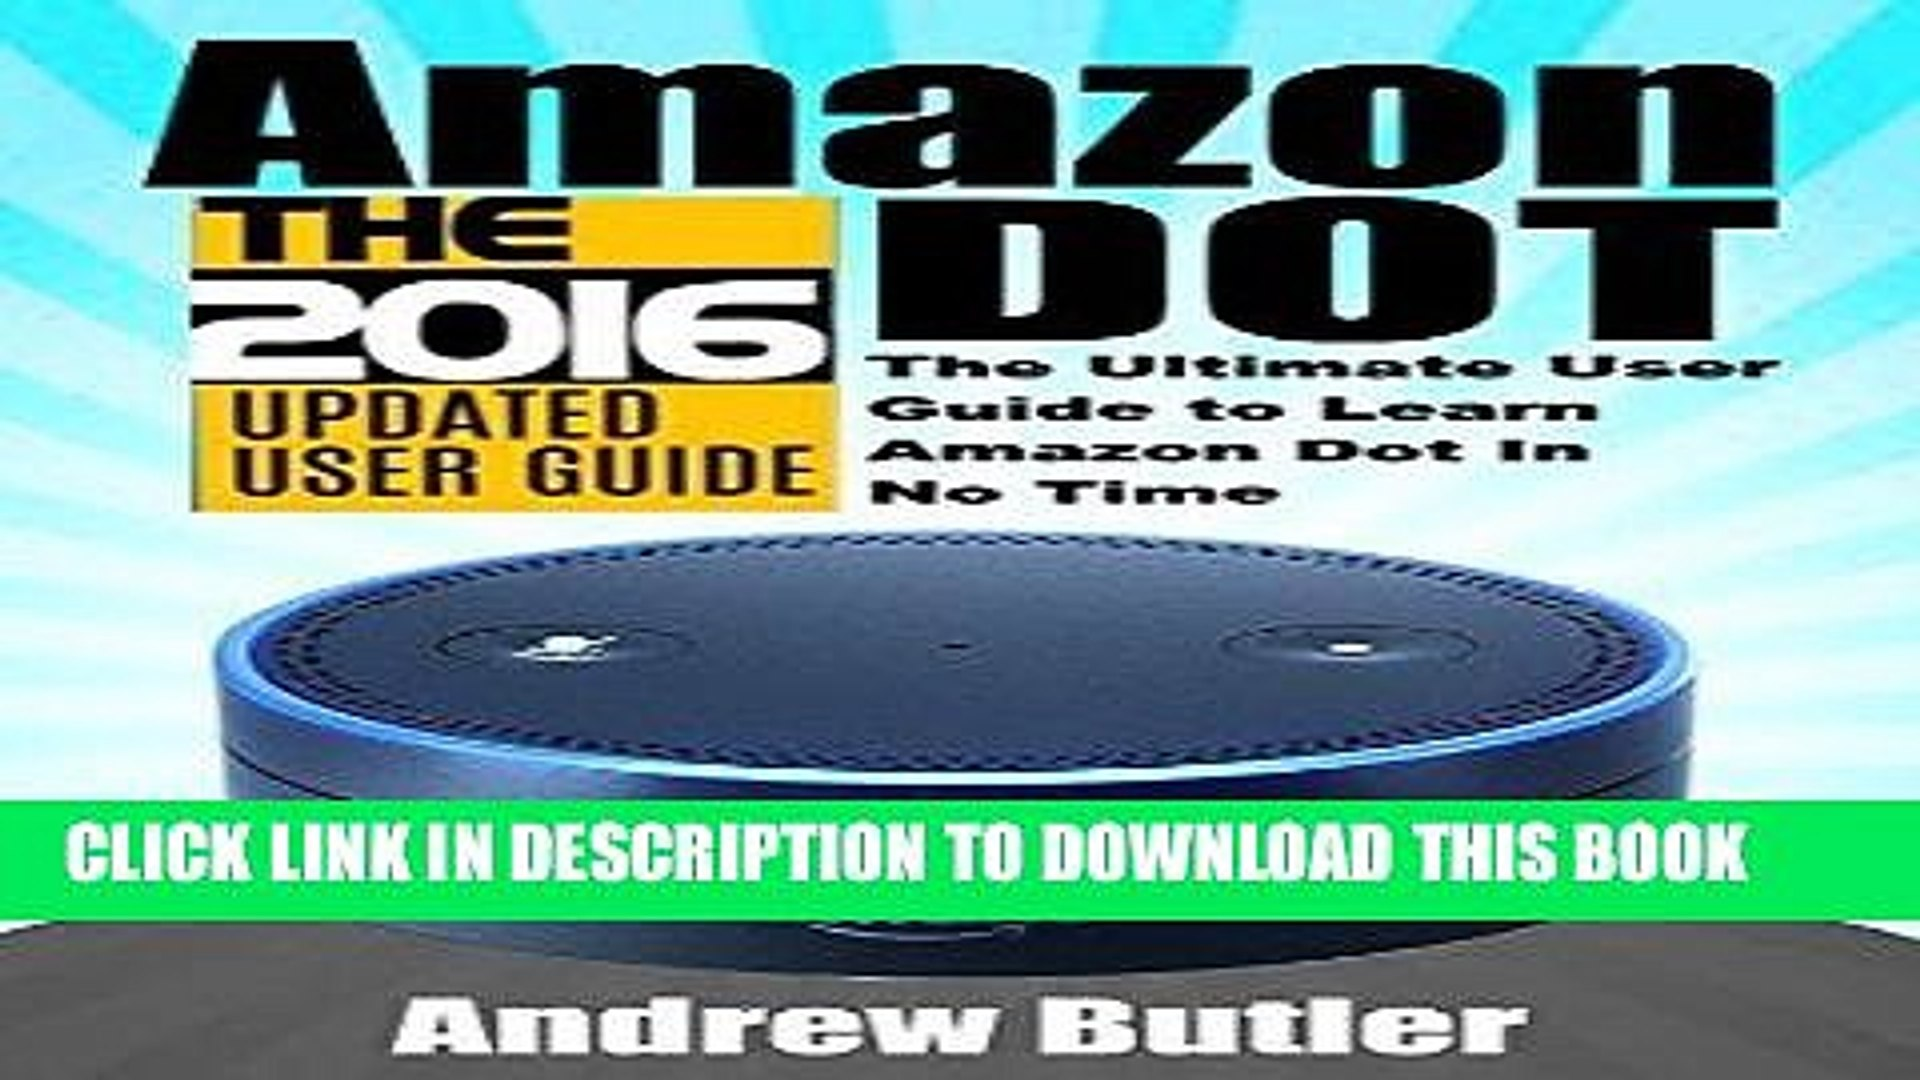 [READ] Ebook Amazon Echo: Dot: The Ultimate User Guide to Learn Amazon Dot In No Time (Amazon Echo